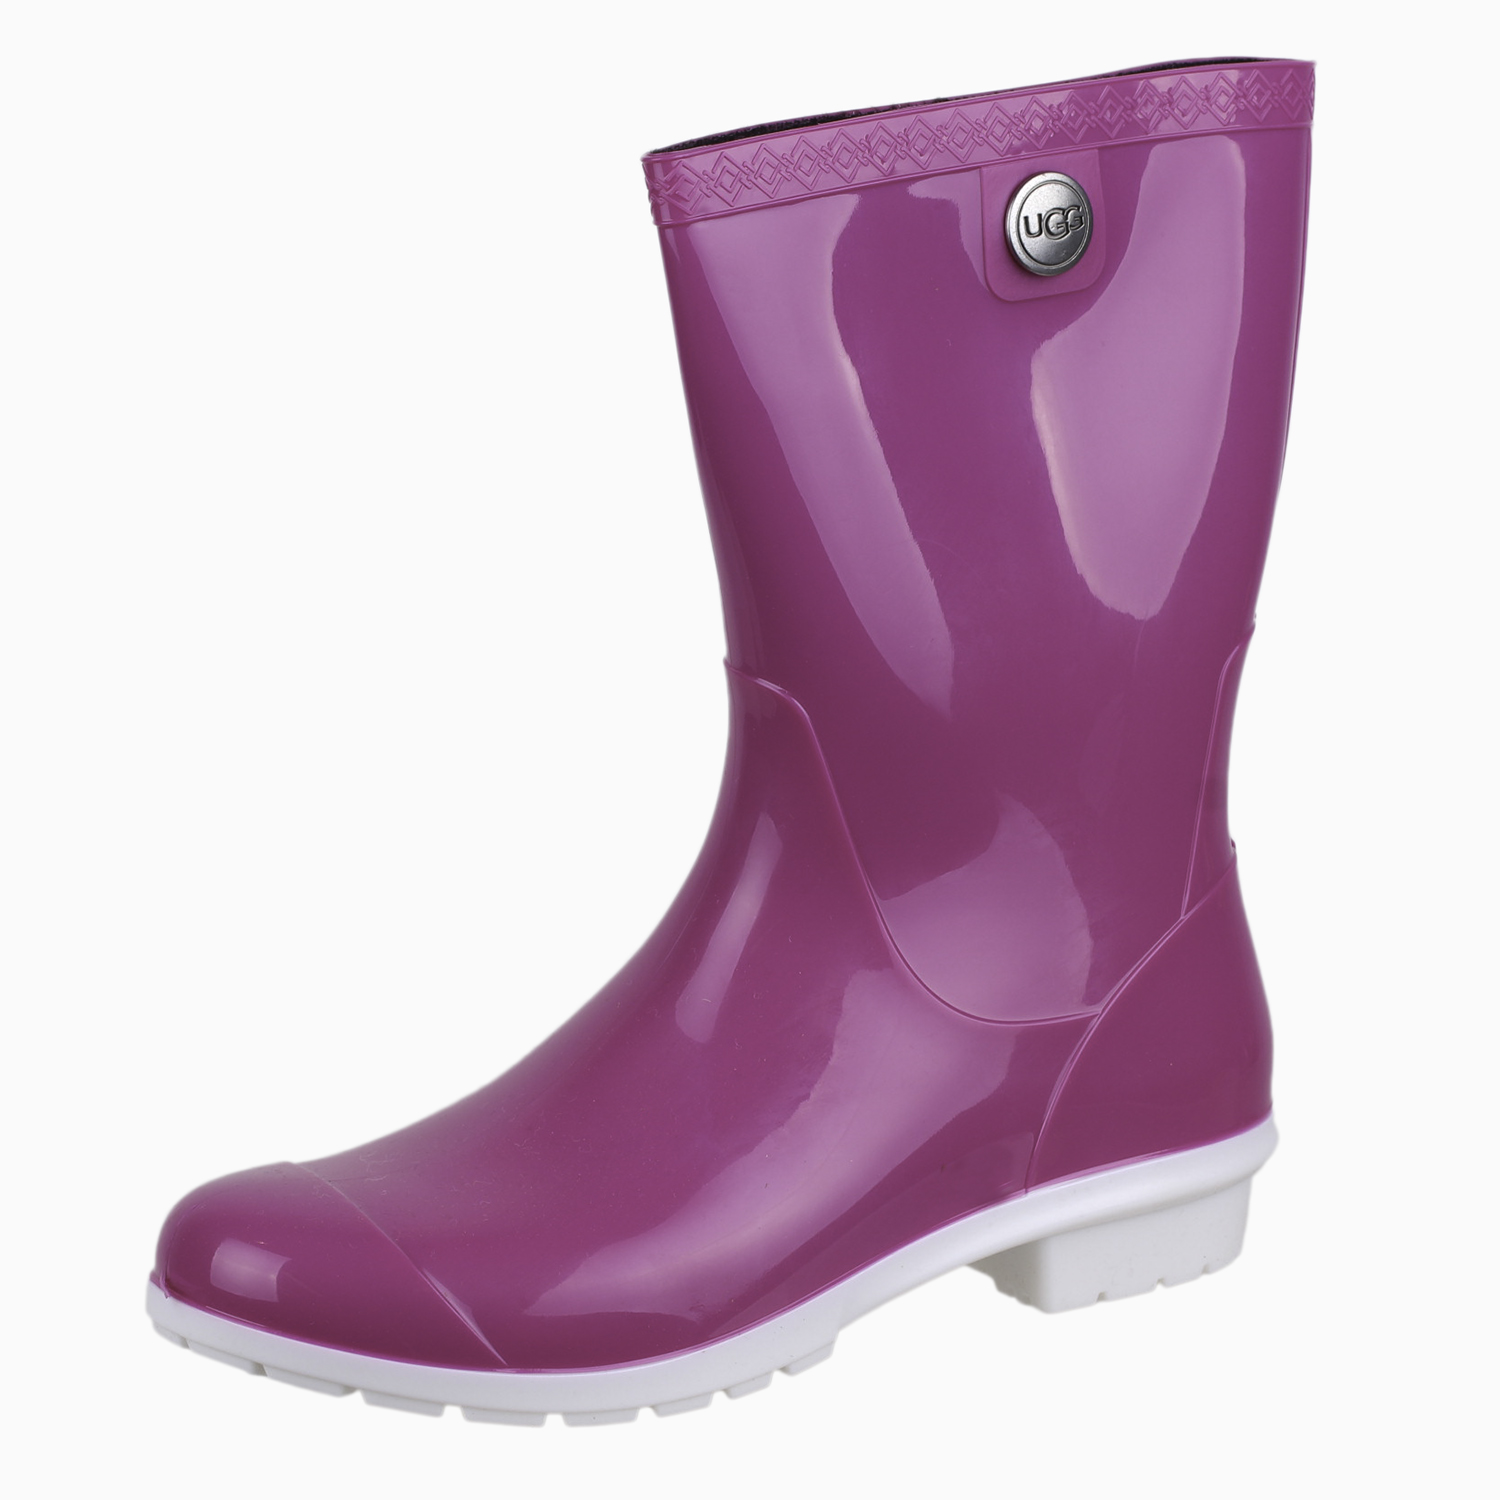 61ac3a31468 Details about UGG Women's Sienna Rain 1014452 Boot Shoes Neon Pink